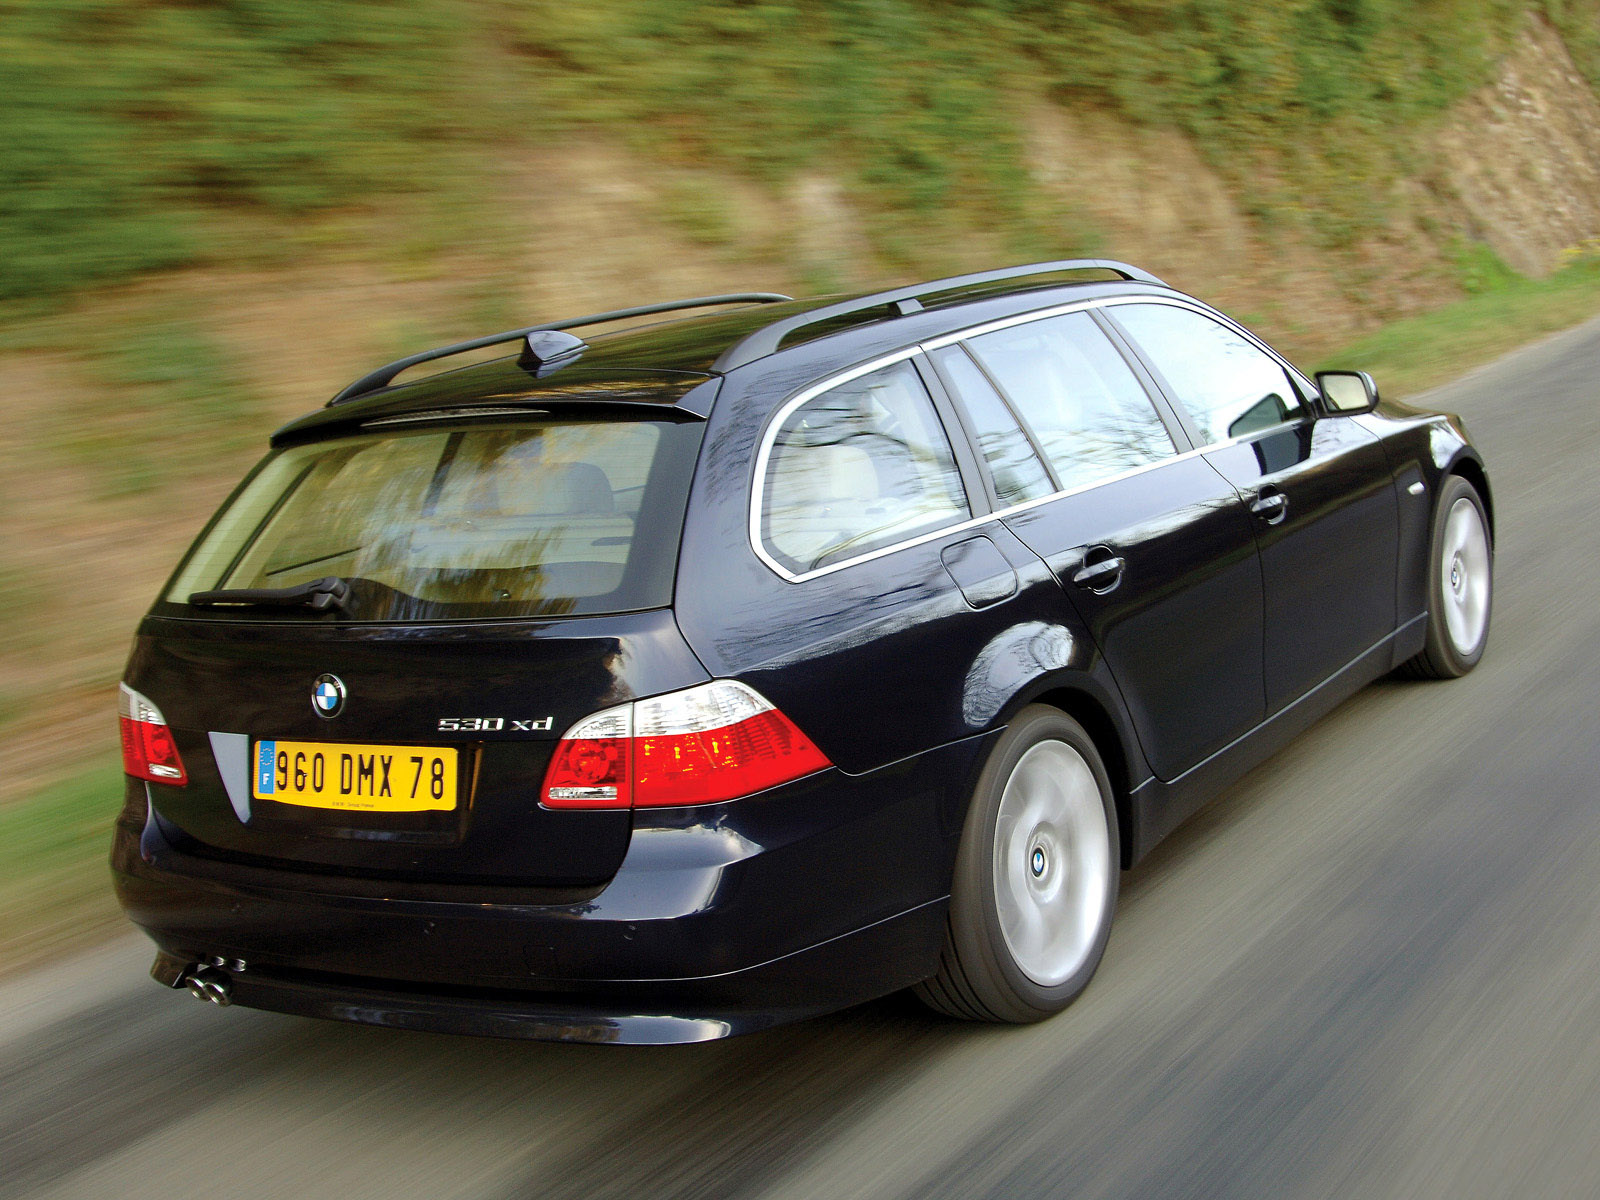 2005 Bmw 5er touring (e61) – pictures, information and specs - Auto ...